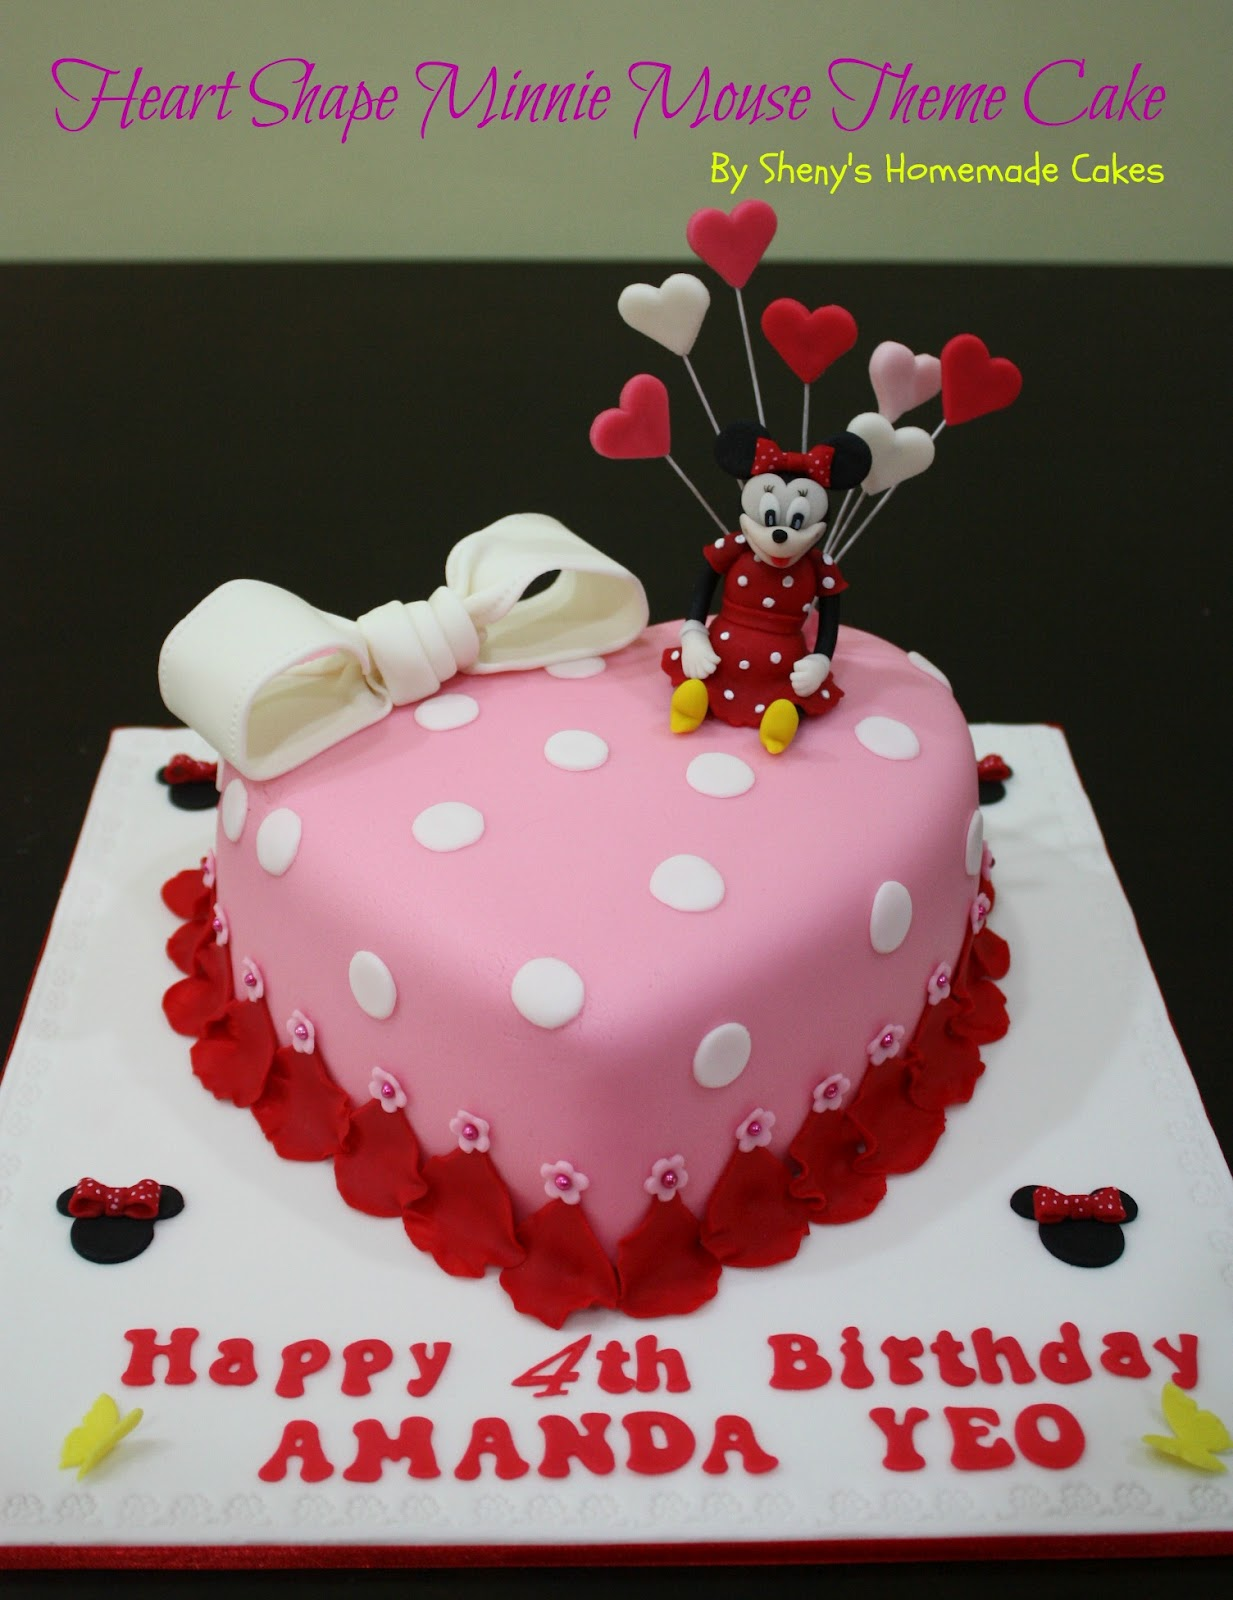 Shenys Homemade Treats Minnie Mouse Theme Birthday Cake For Amanda